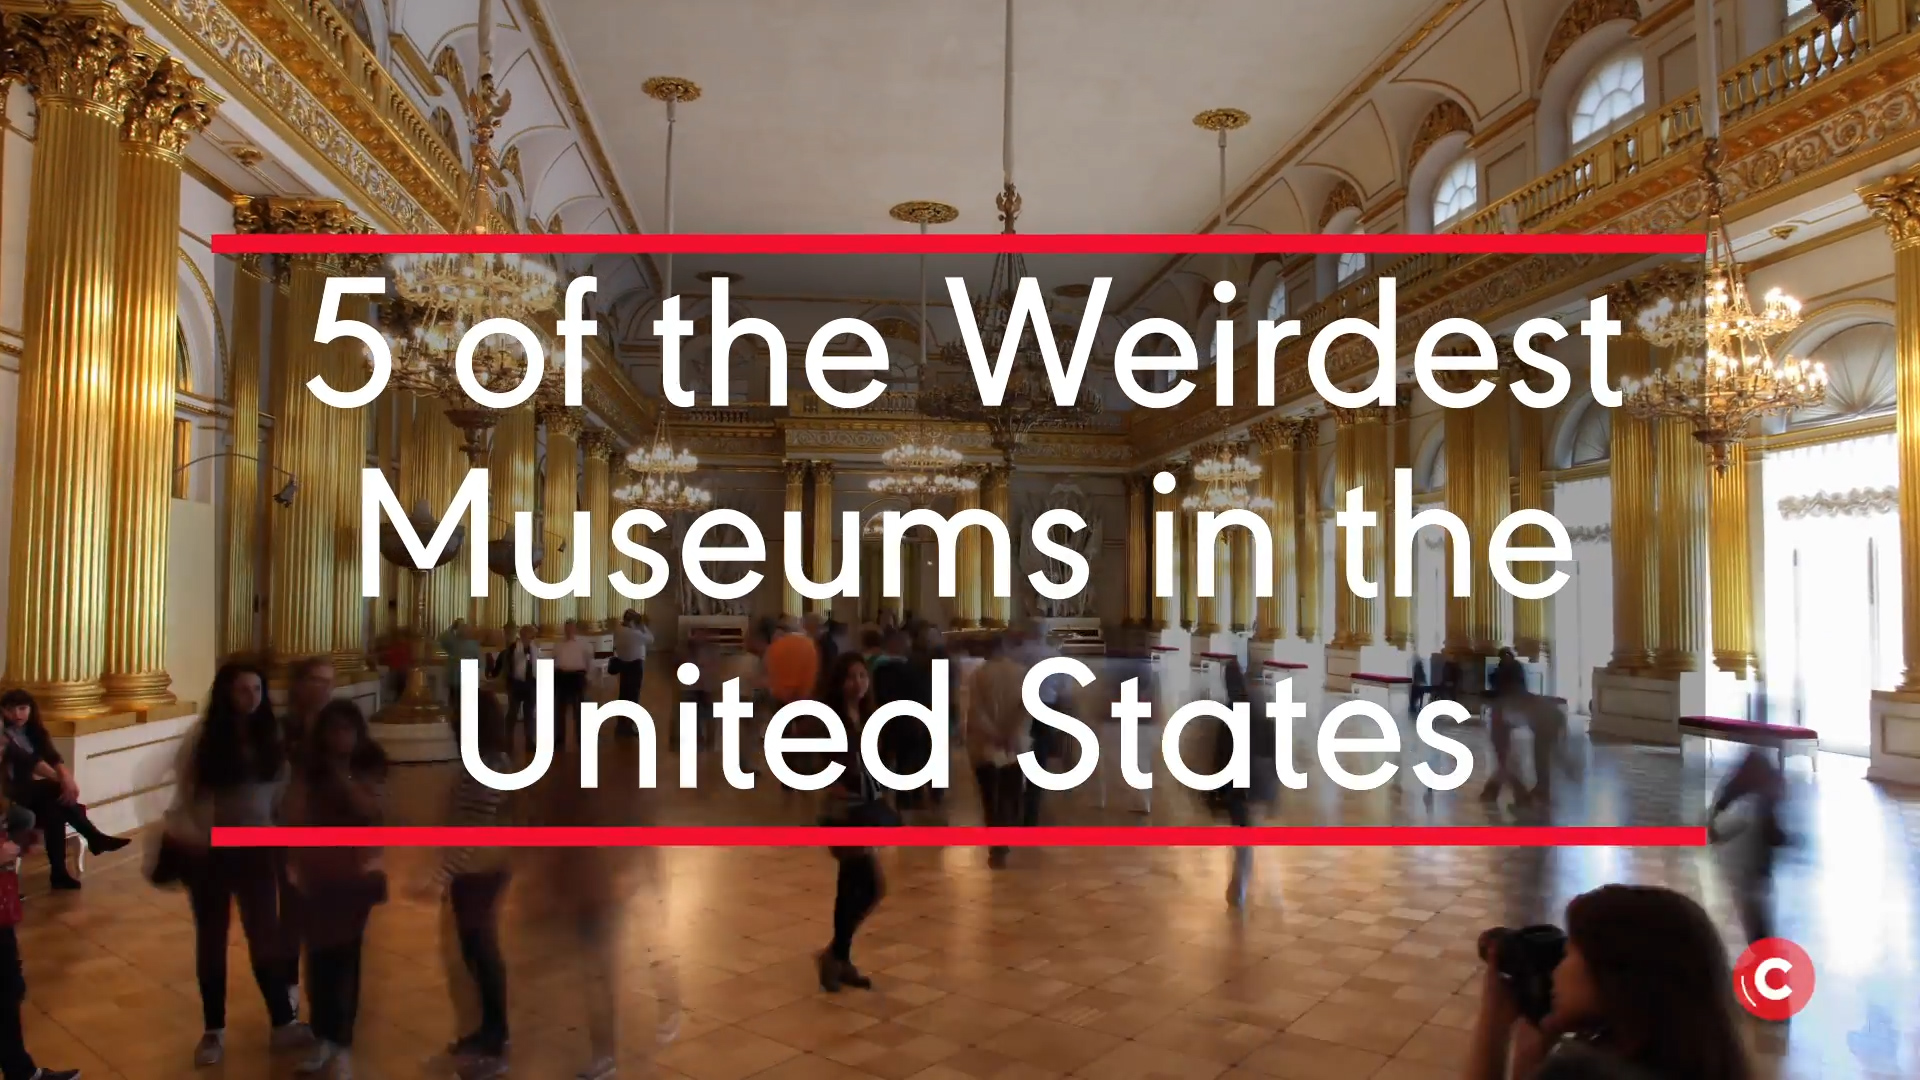 5 of the Weirdest Museums in the United States